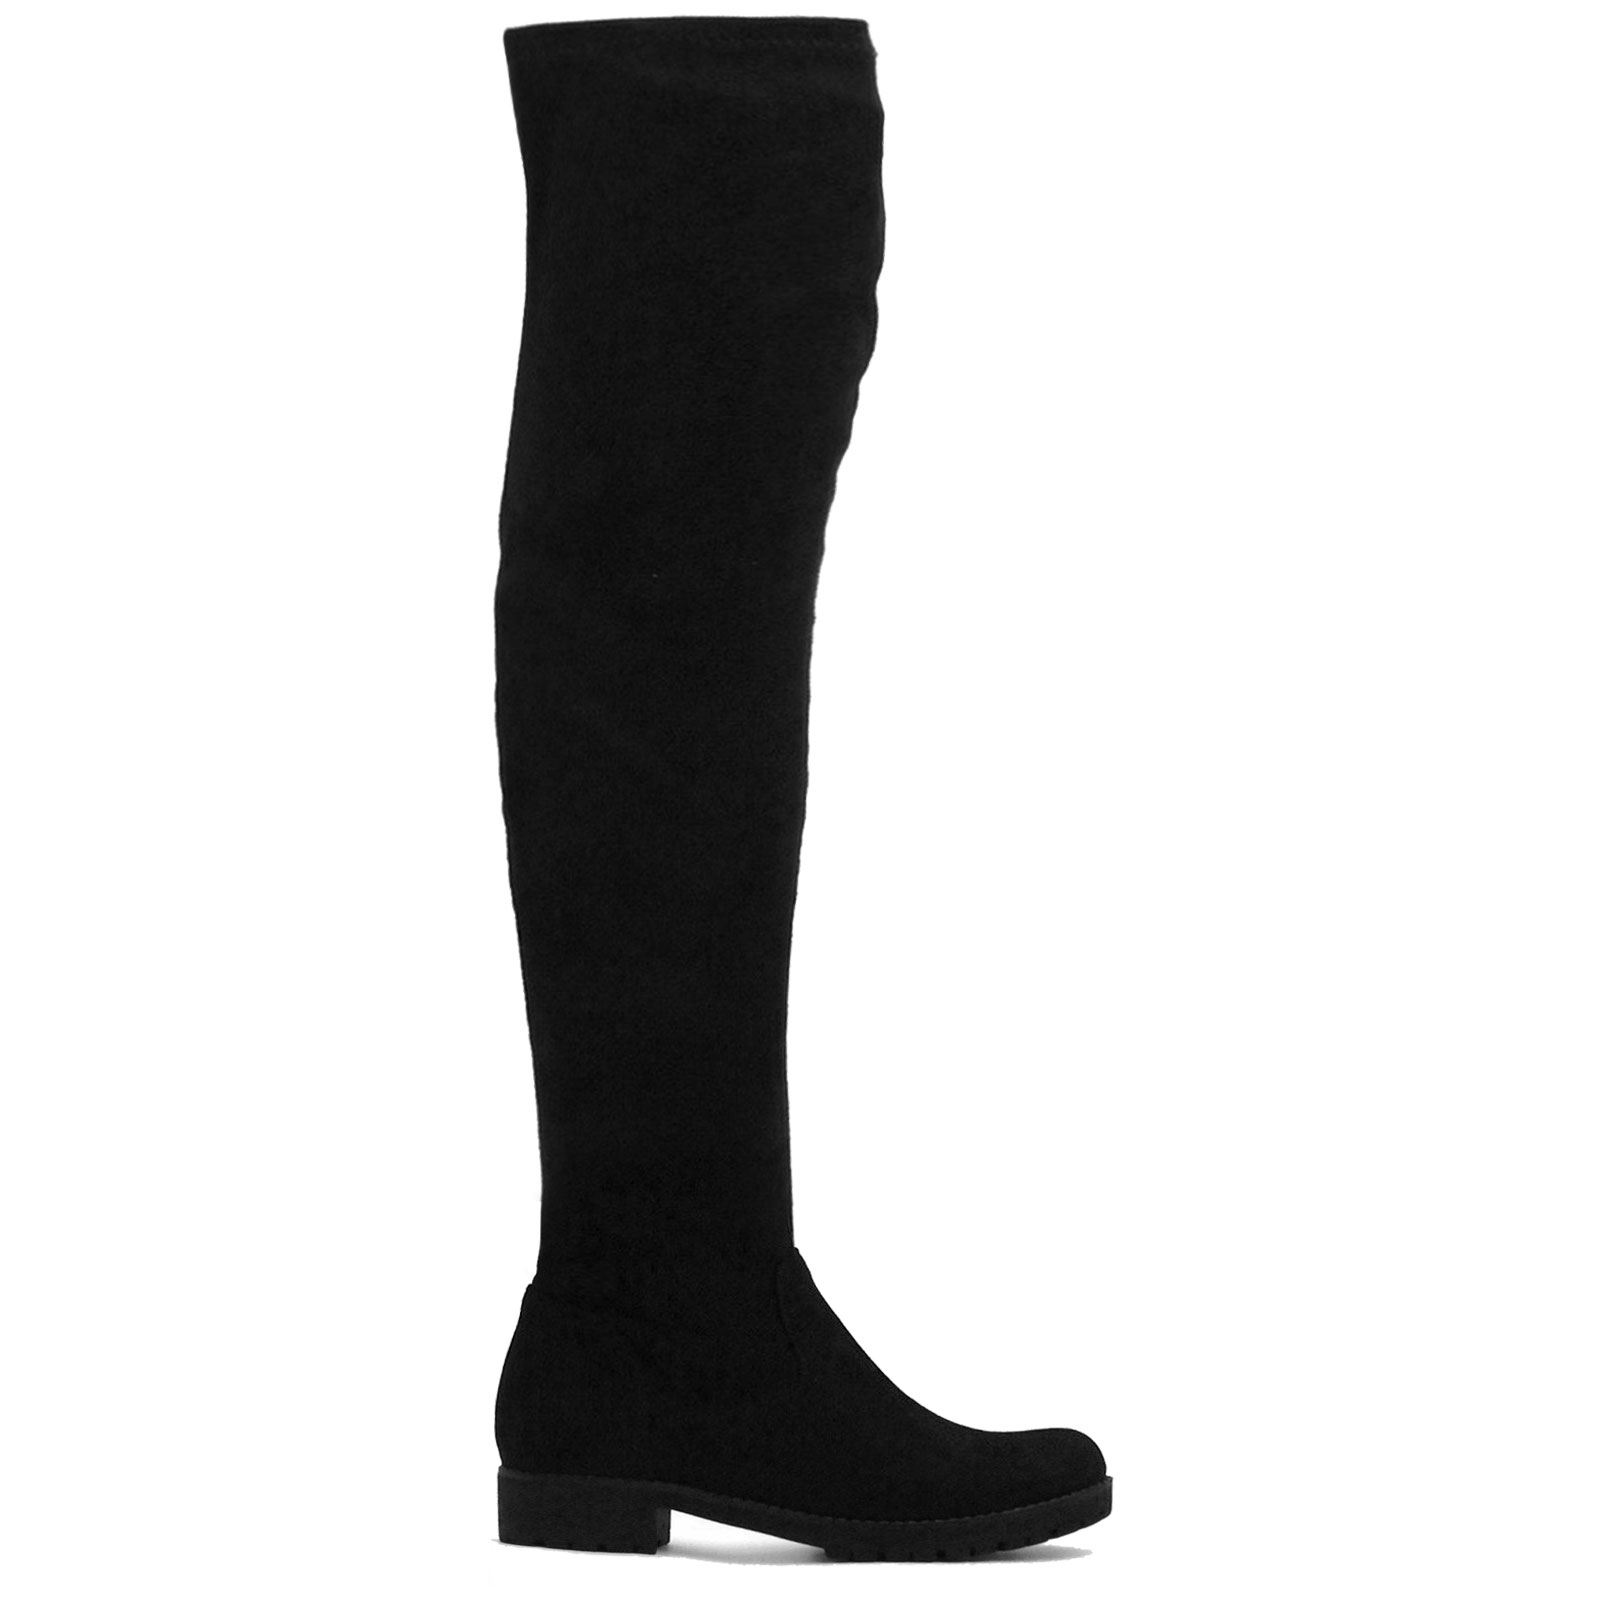 LADIES WOMENS OVER THE KNEE LONG THIGH HIGH CHUNKY PLATFORM HEEL ...